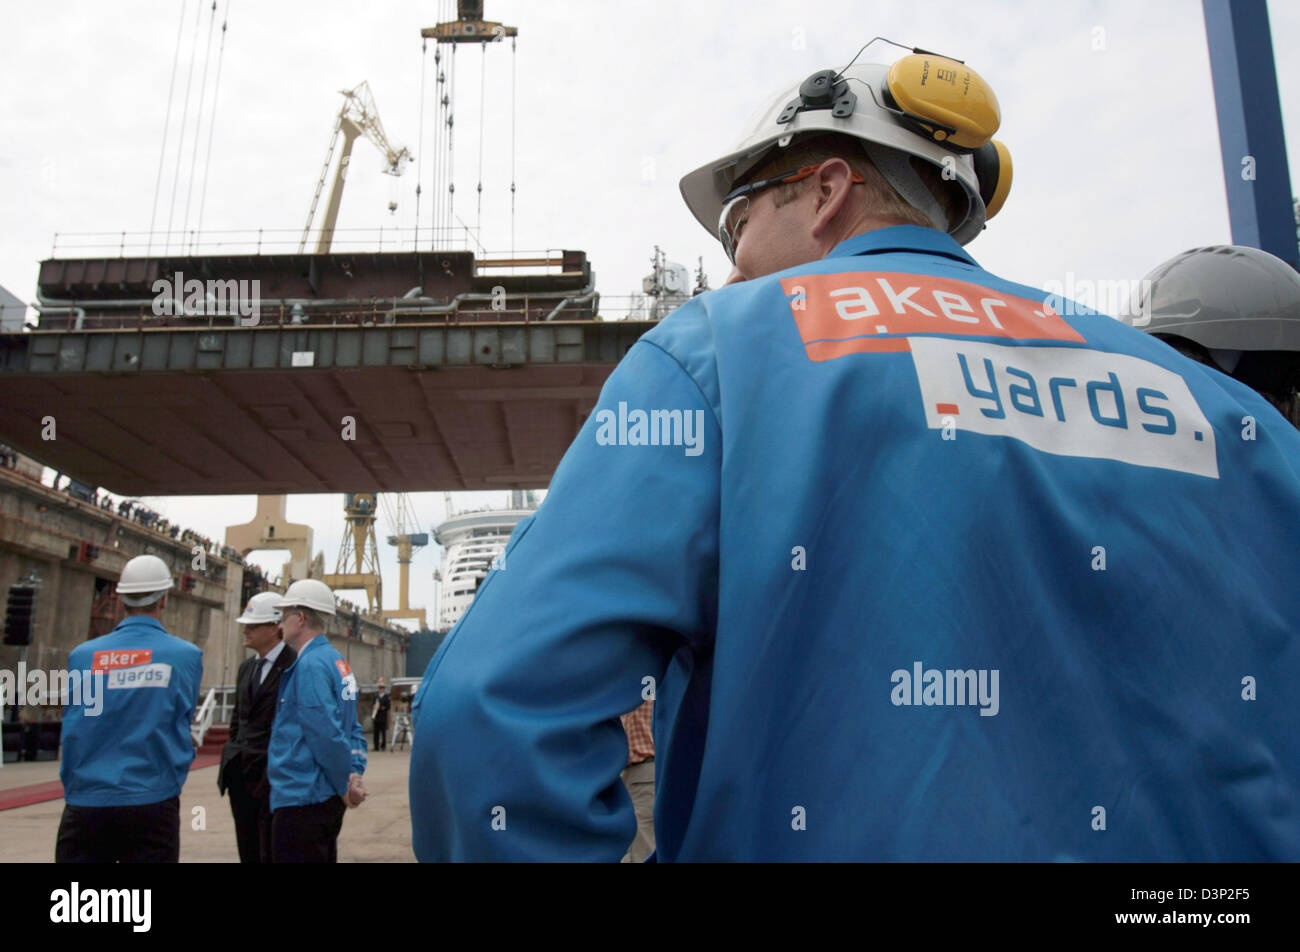 A staff member of the Aker Yards shipyard looks to the 'Color Magic' in Turku, Finland, Tuesday, 8 August - Stock Image